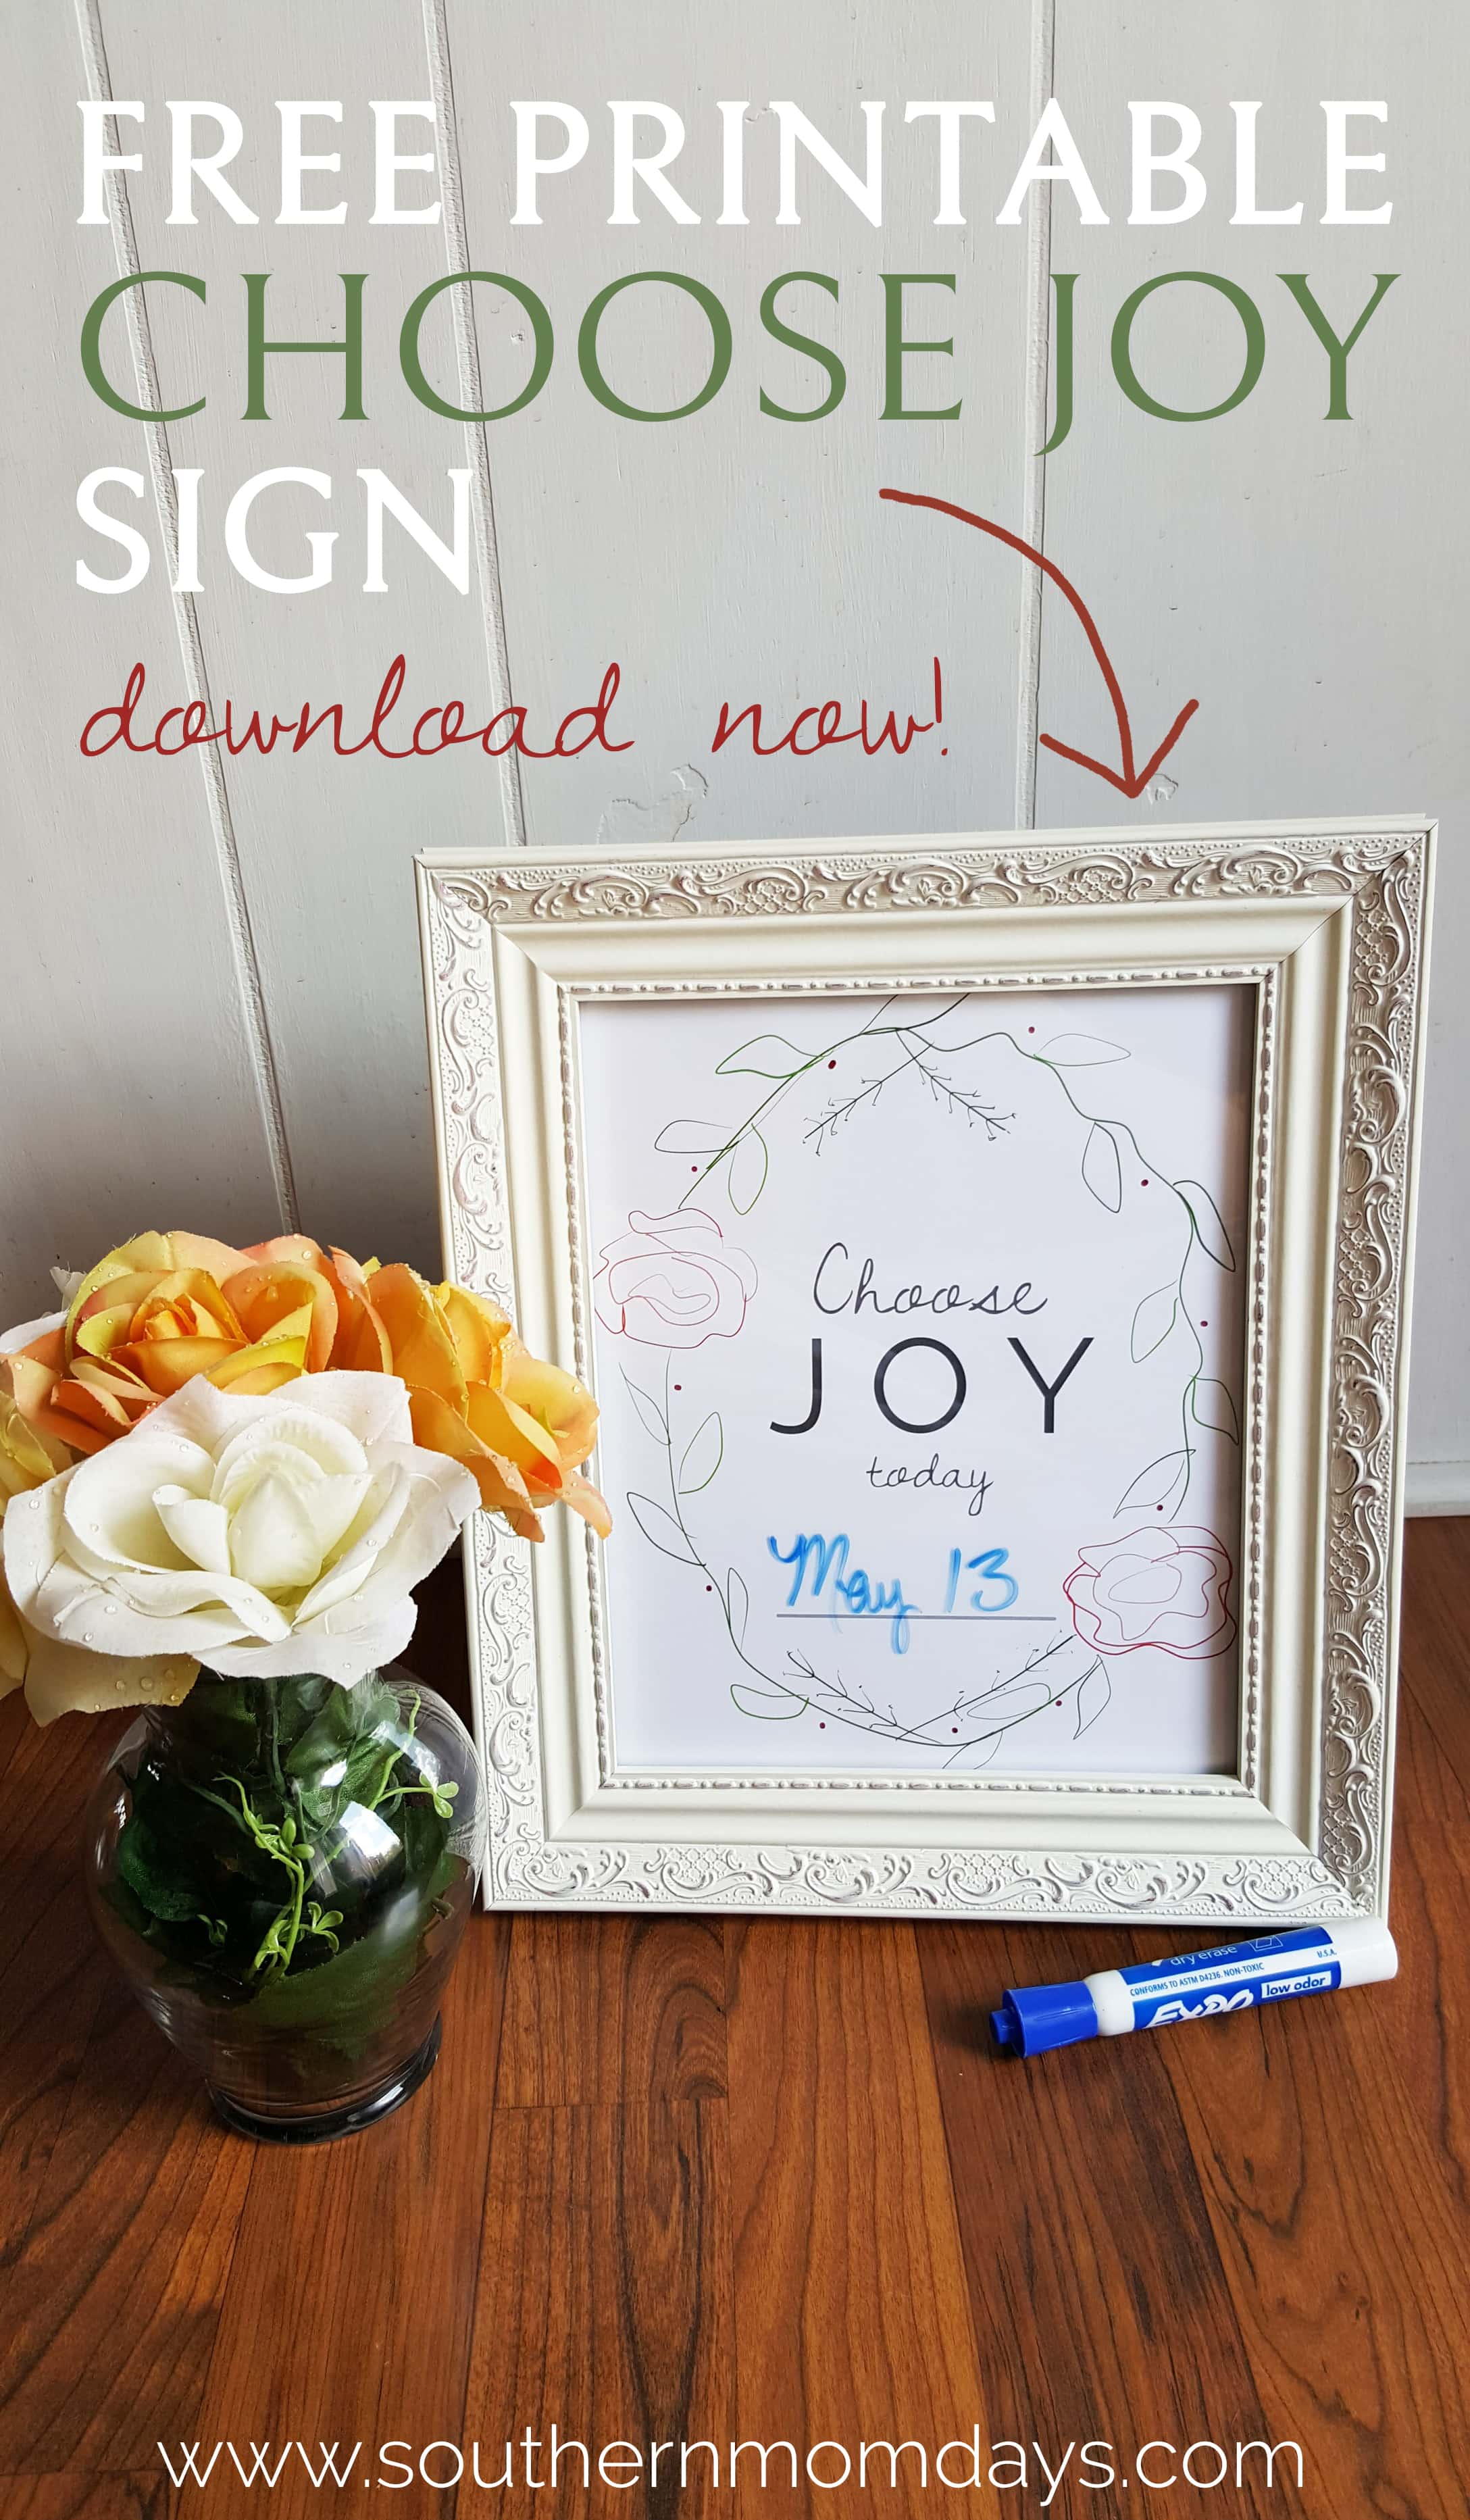 Choose Joy sign free printable for today featured by Southern Momdays